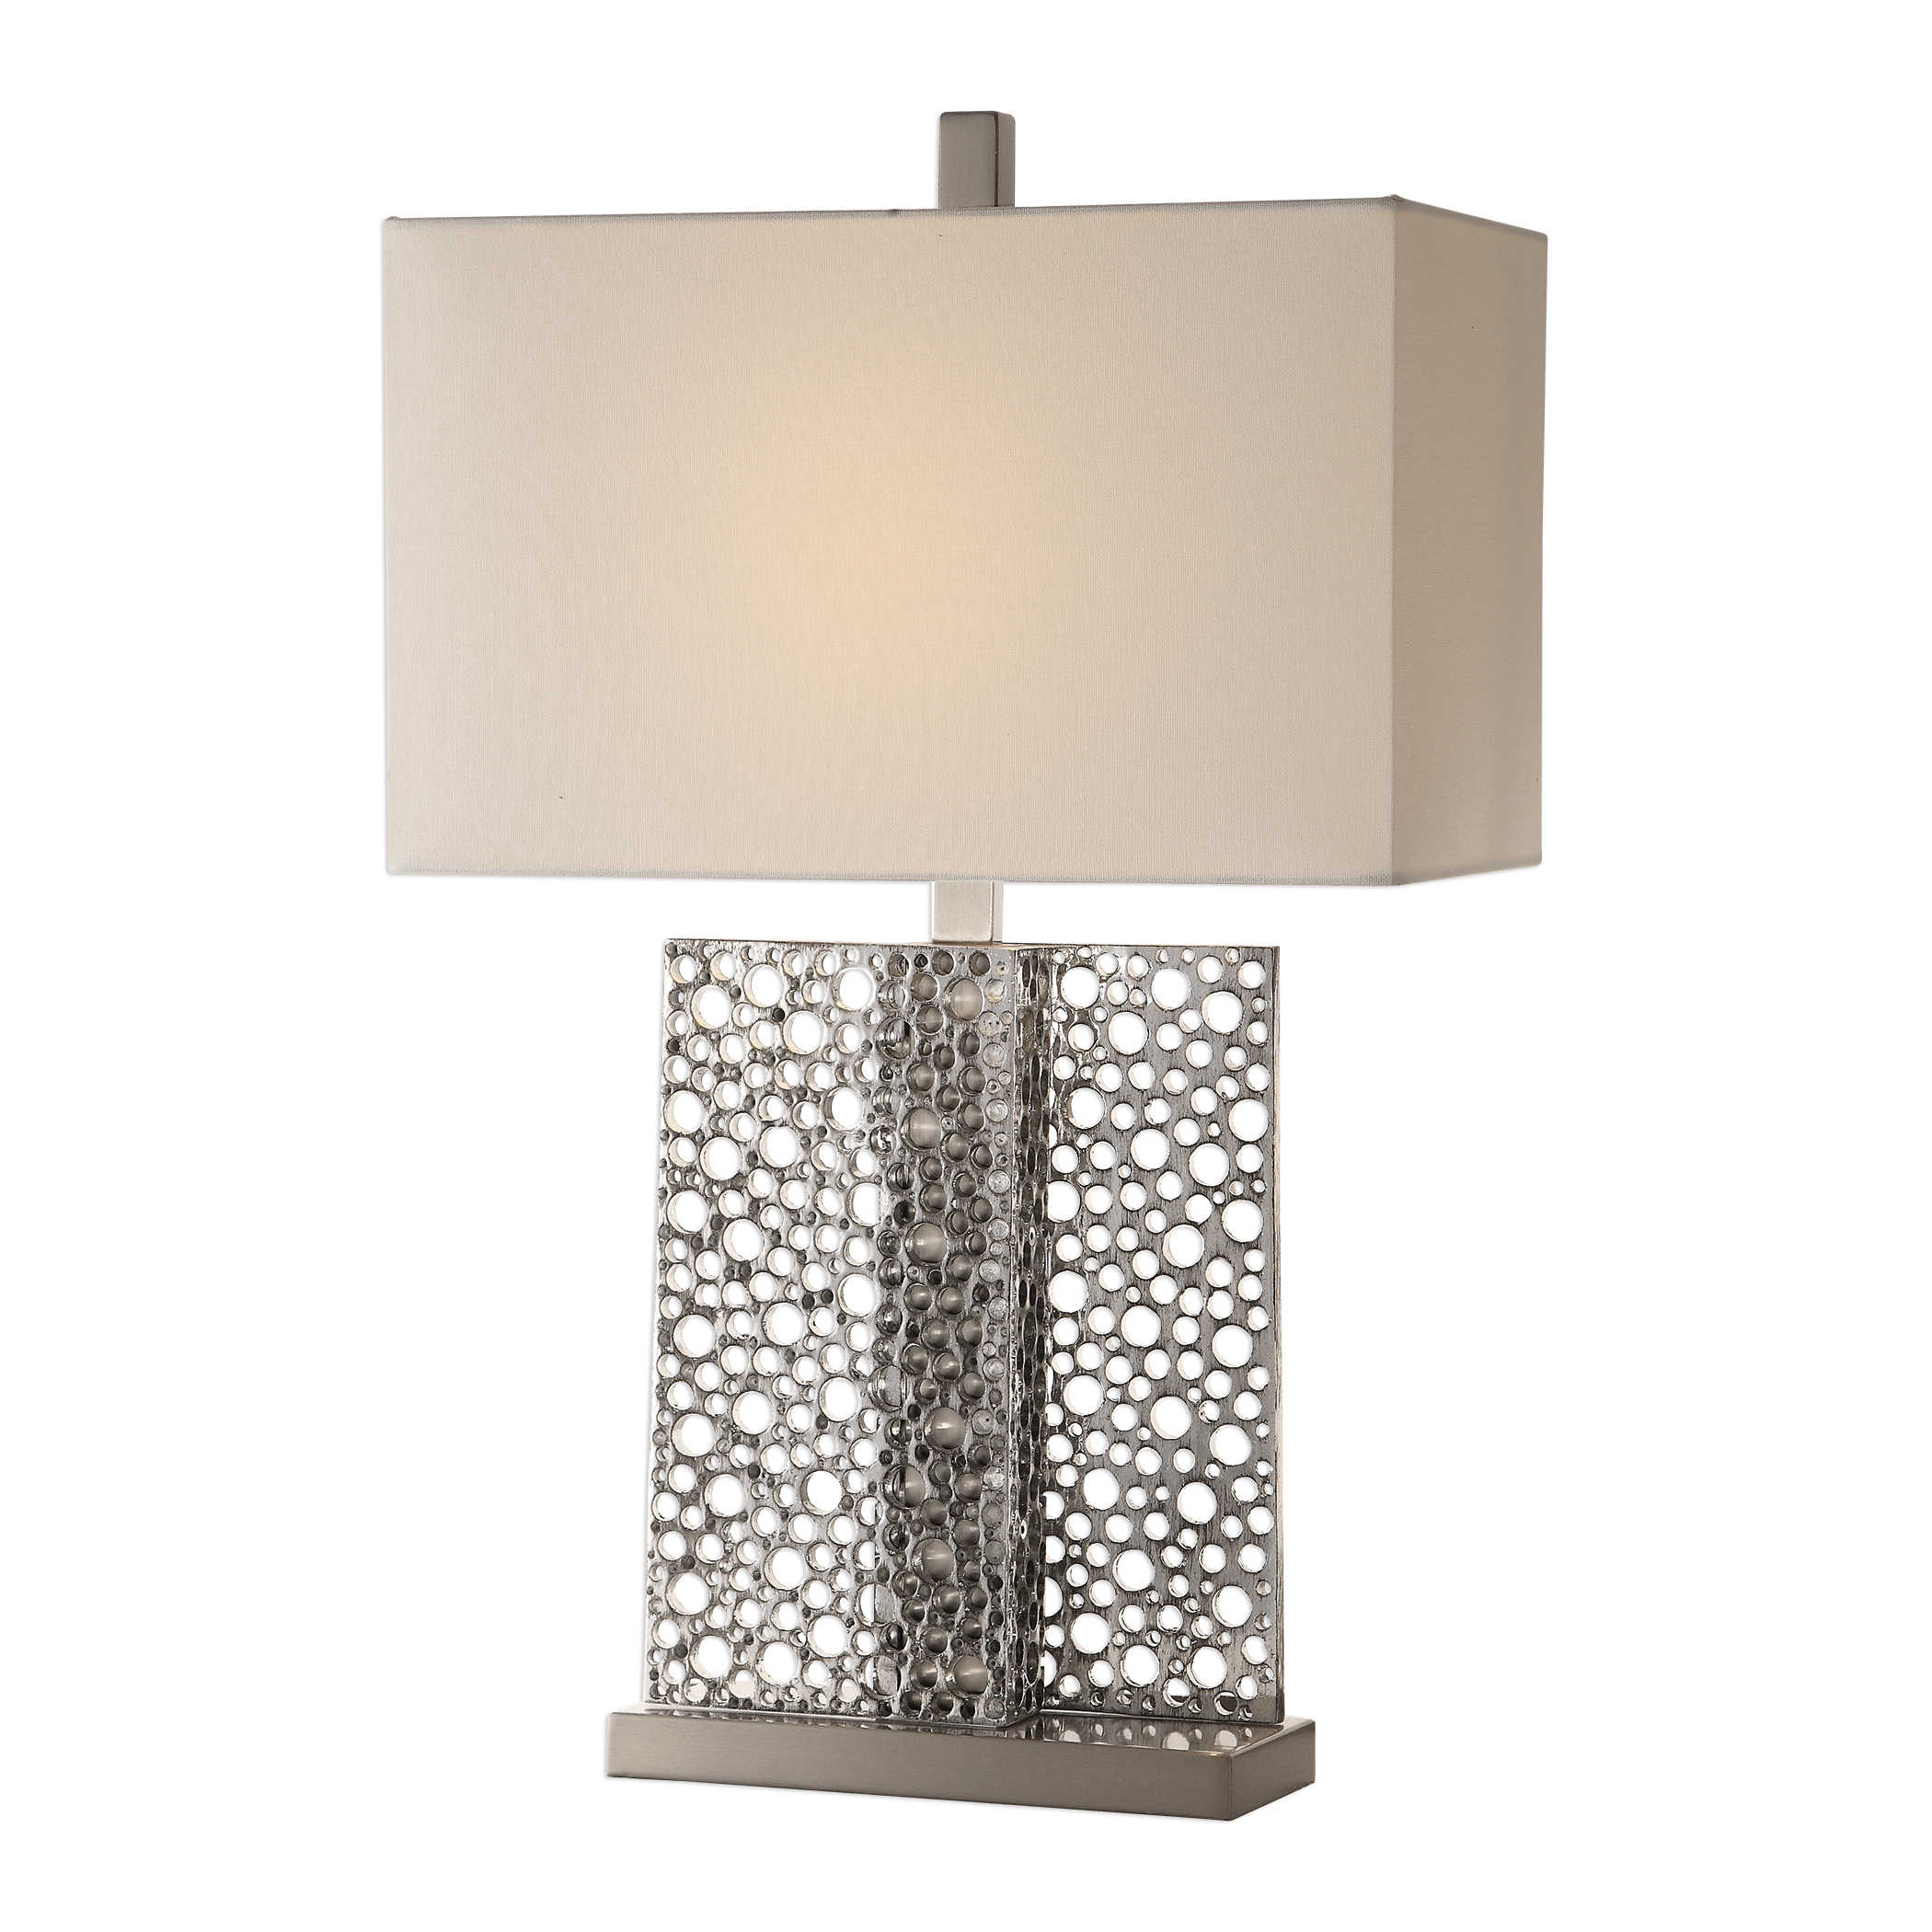 Metallic Holes Lamp-$345.00